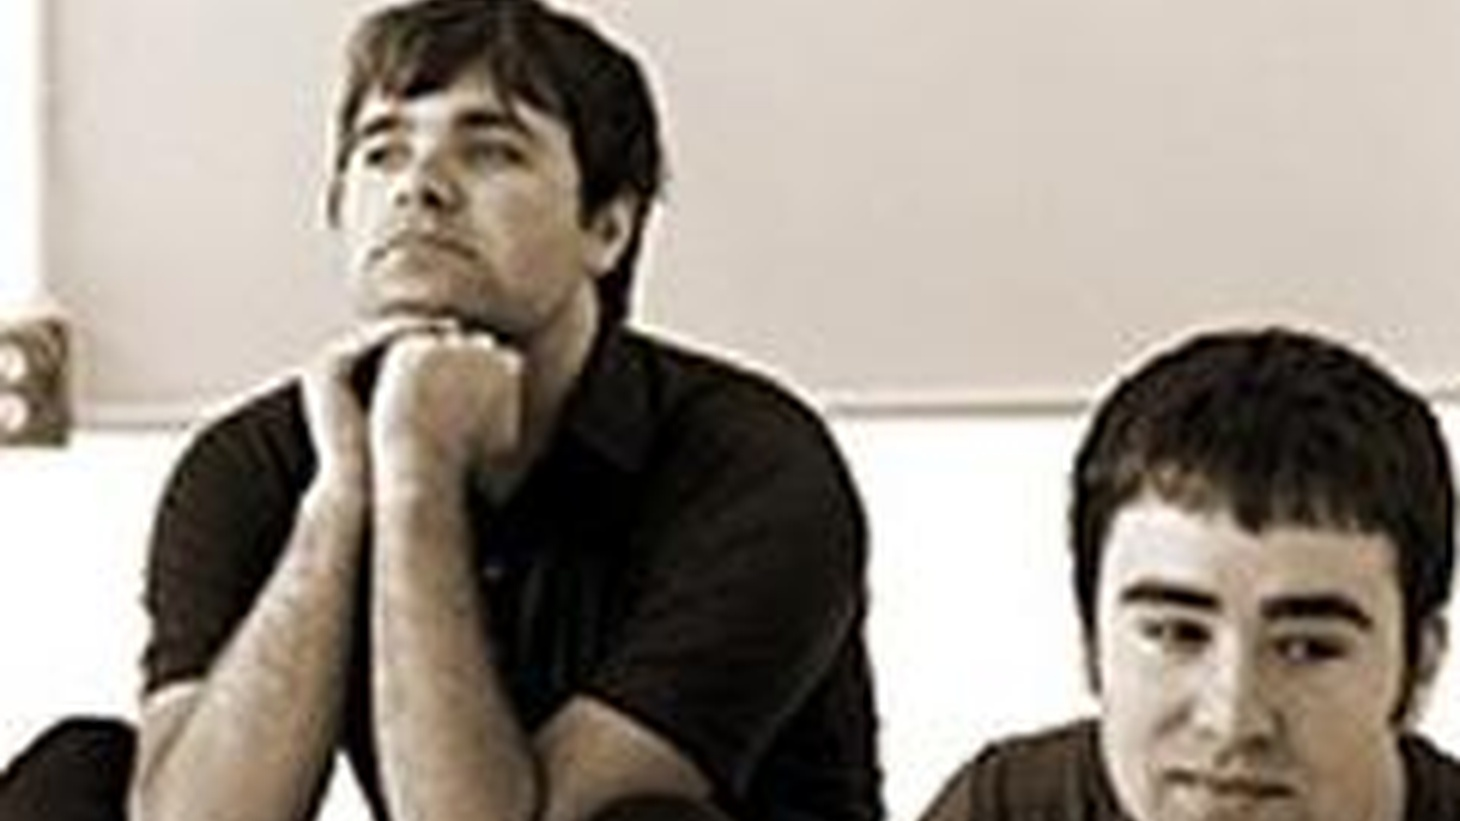 Named for the way they traded sounds and ideas, The Postal Service is fronted by Jimmy Tamborello of Dntel and Ben Gibbard of Death Cab for Cutie, the band performs live on Morning Becomes Eclectic.